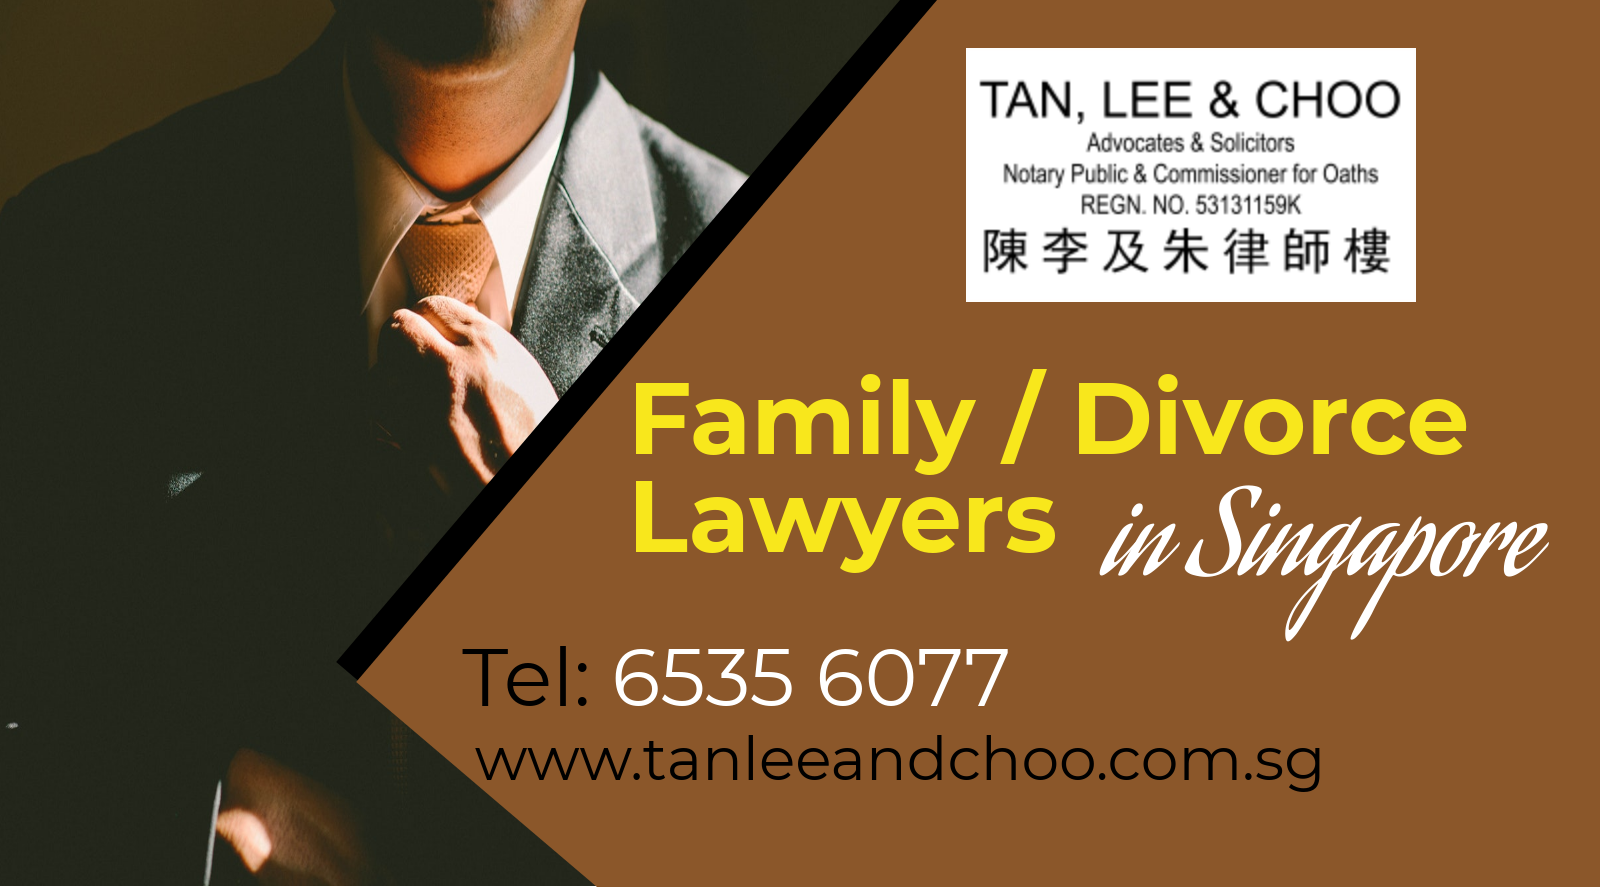 Need To Hire The Top Family Or Divorce Lawyers In Singapore